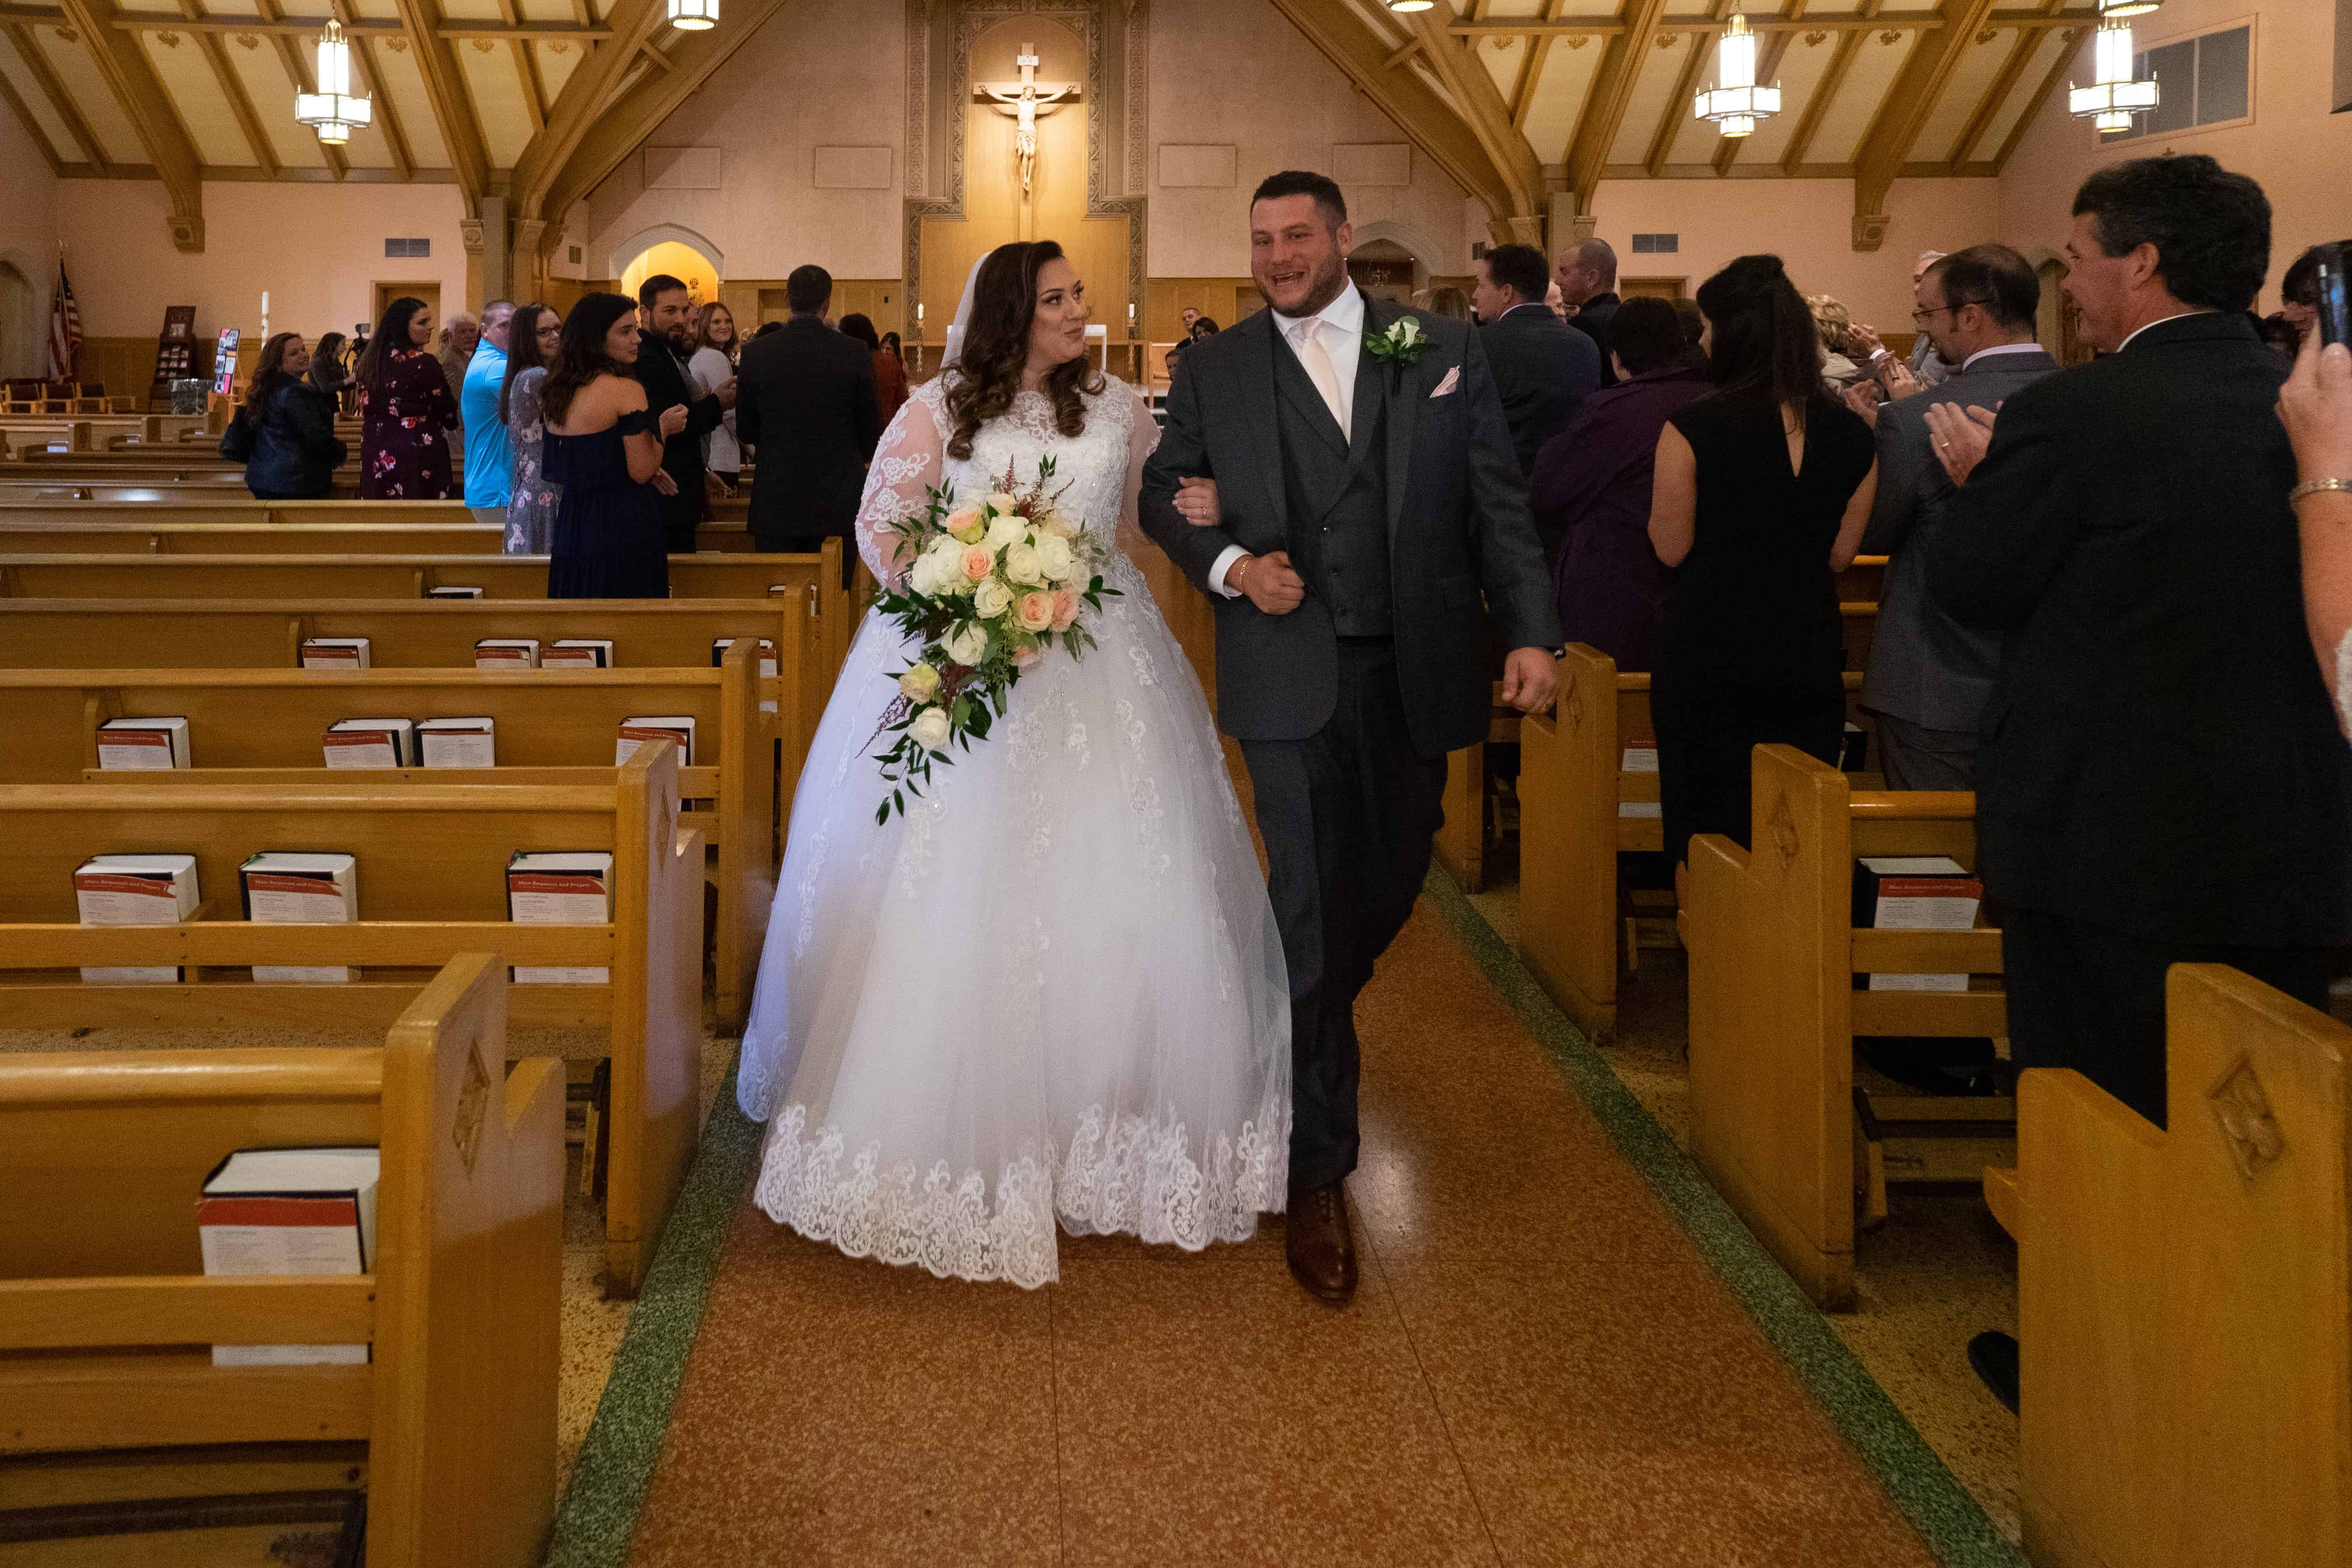 bride and groom walking after their wedding at Church of Saint Clare